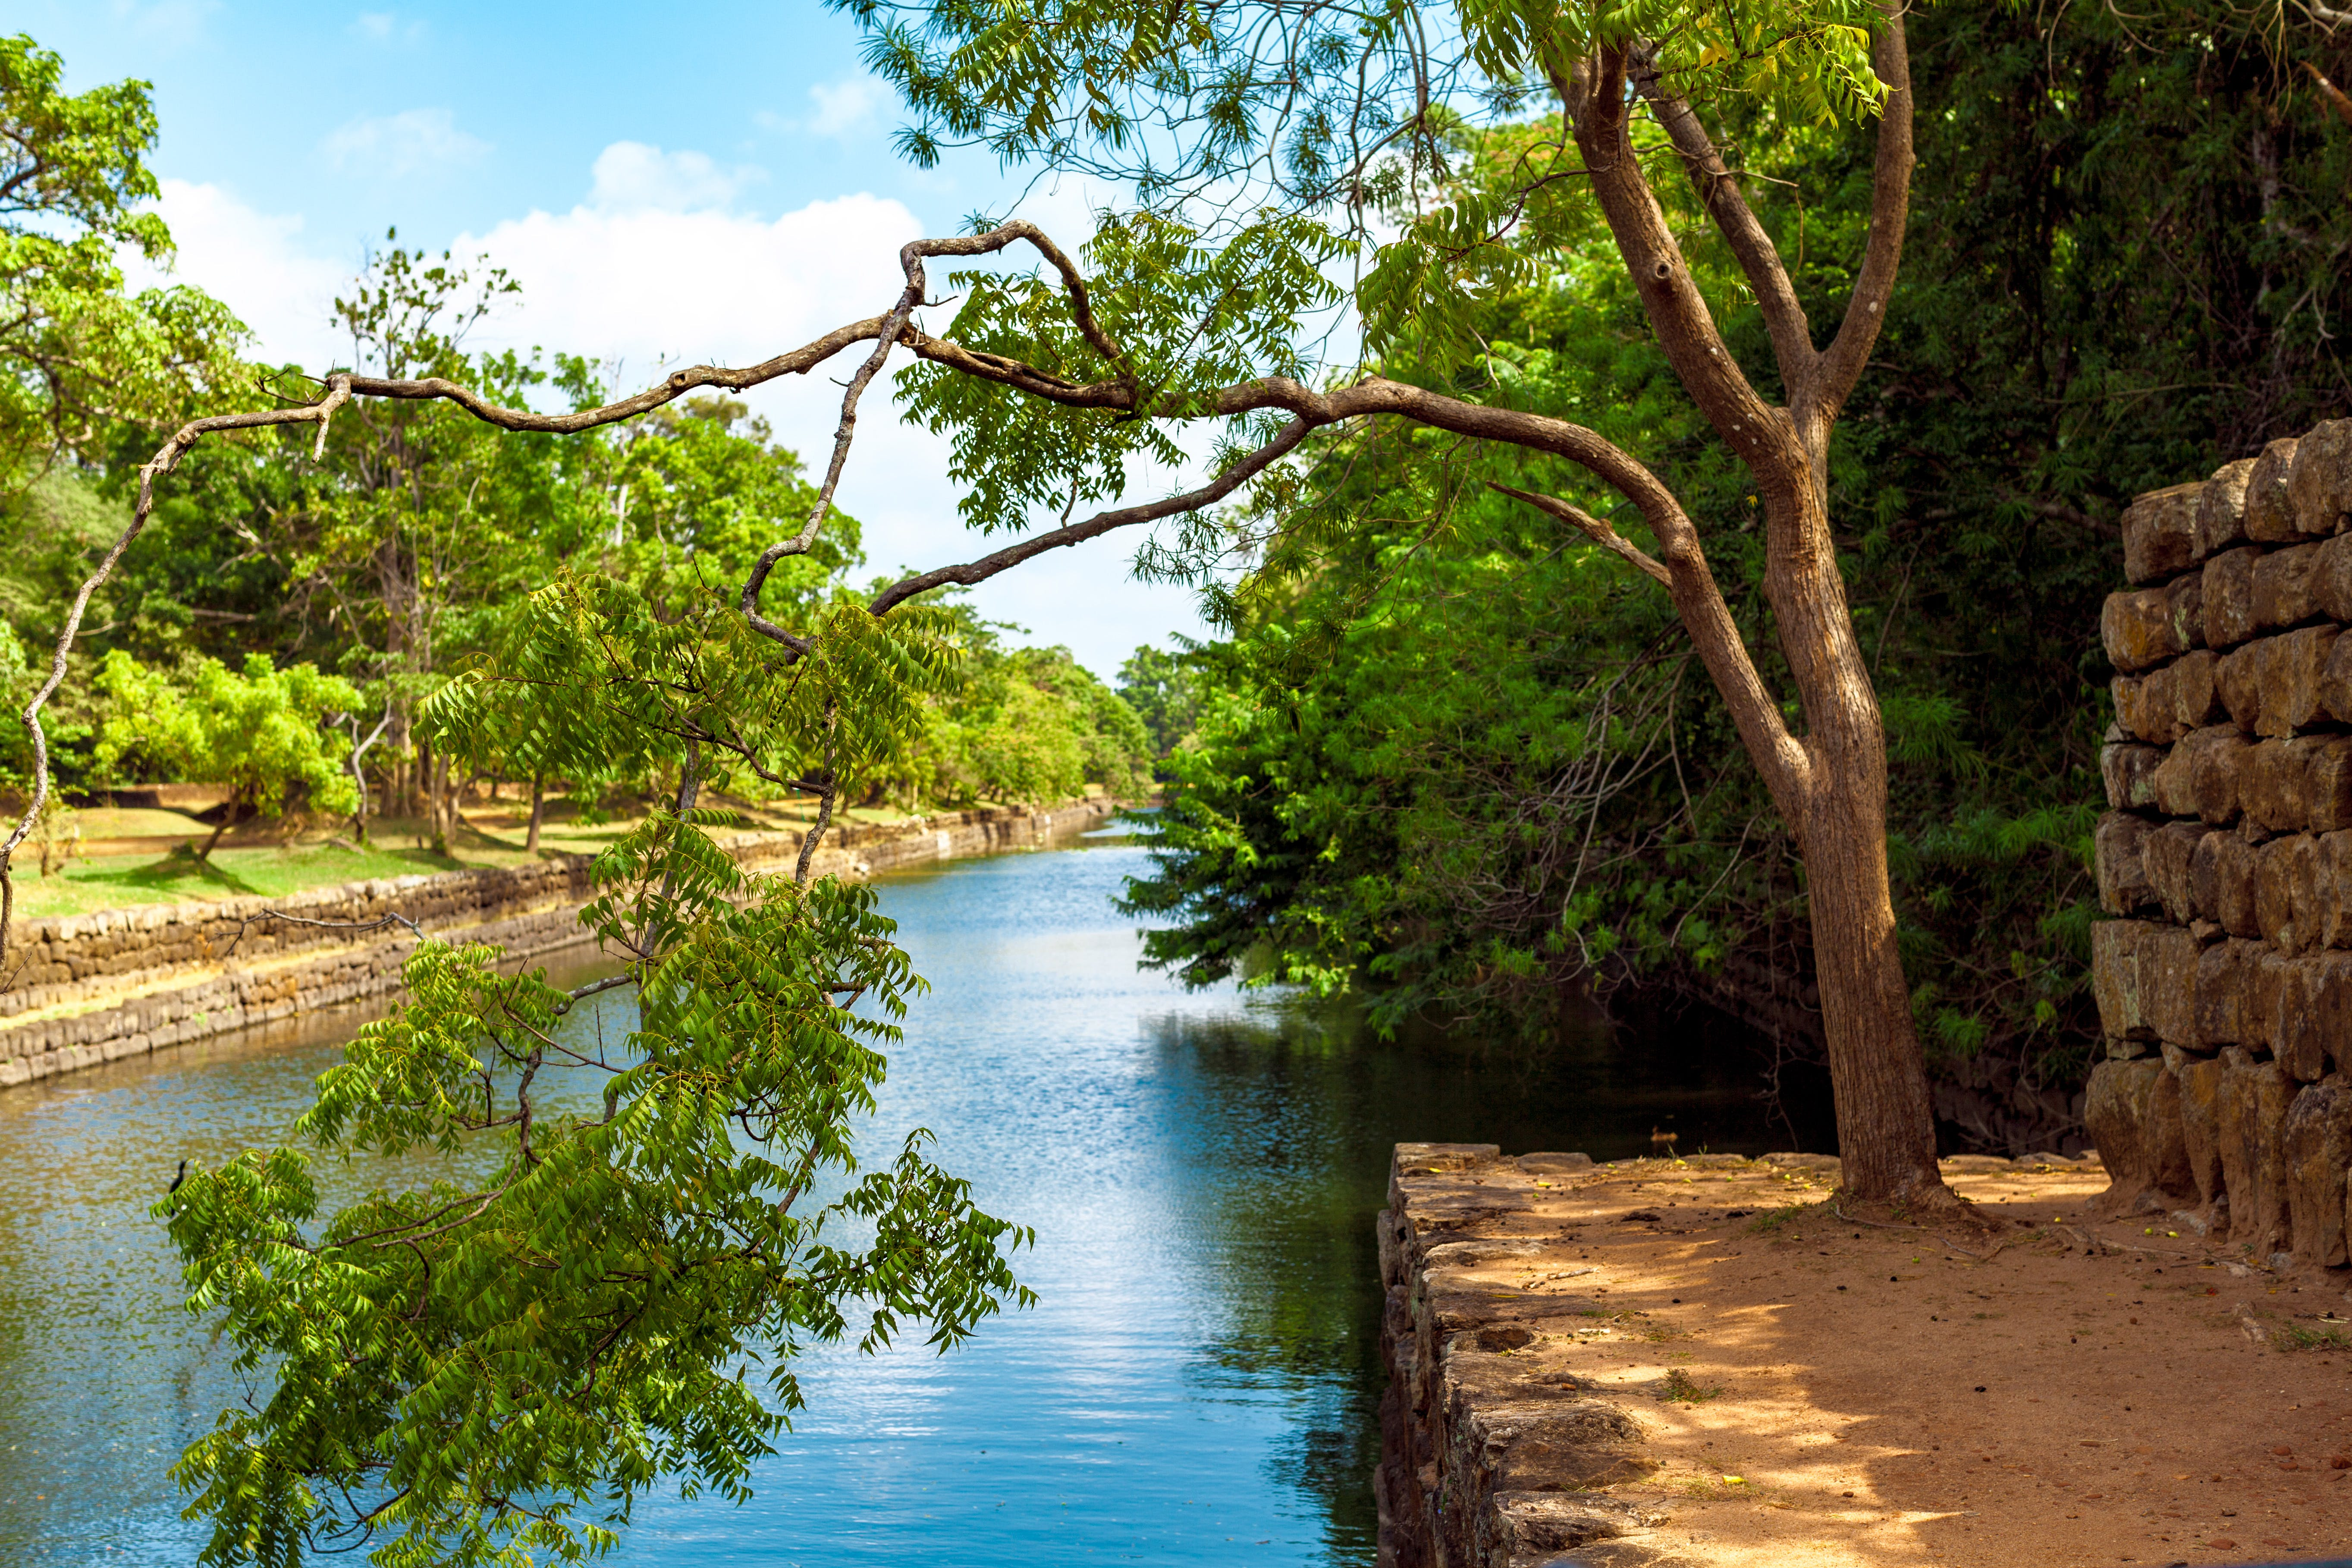 Photo of Green Leaf Tree Beside River